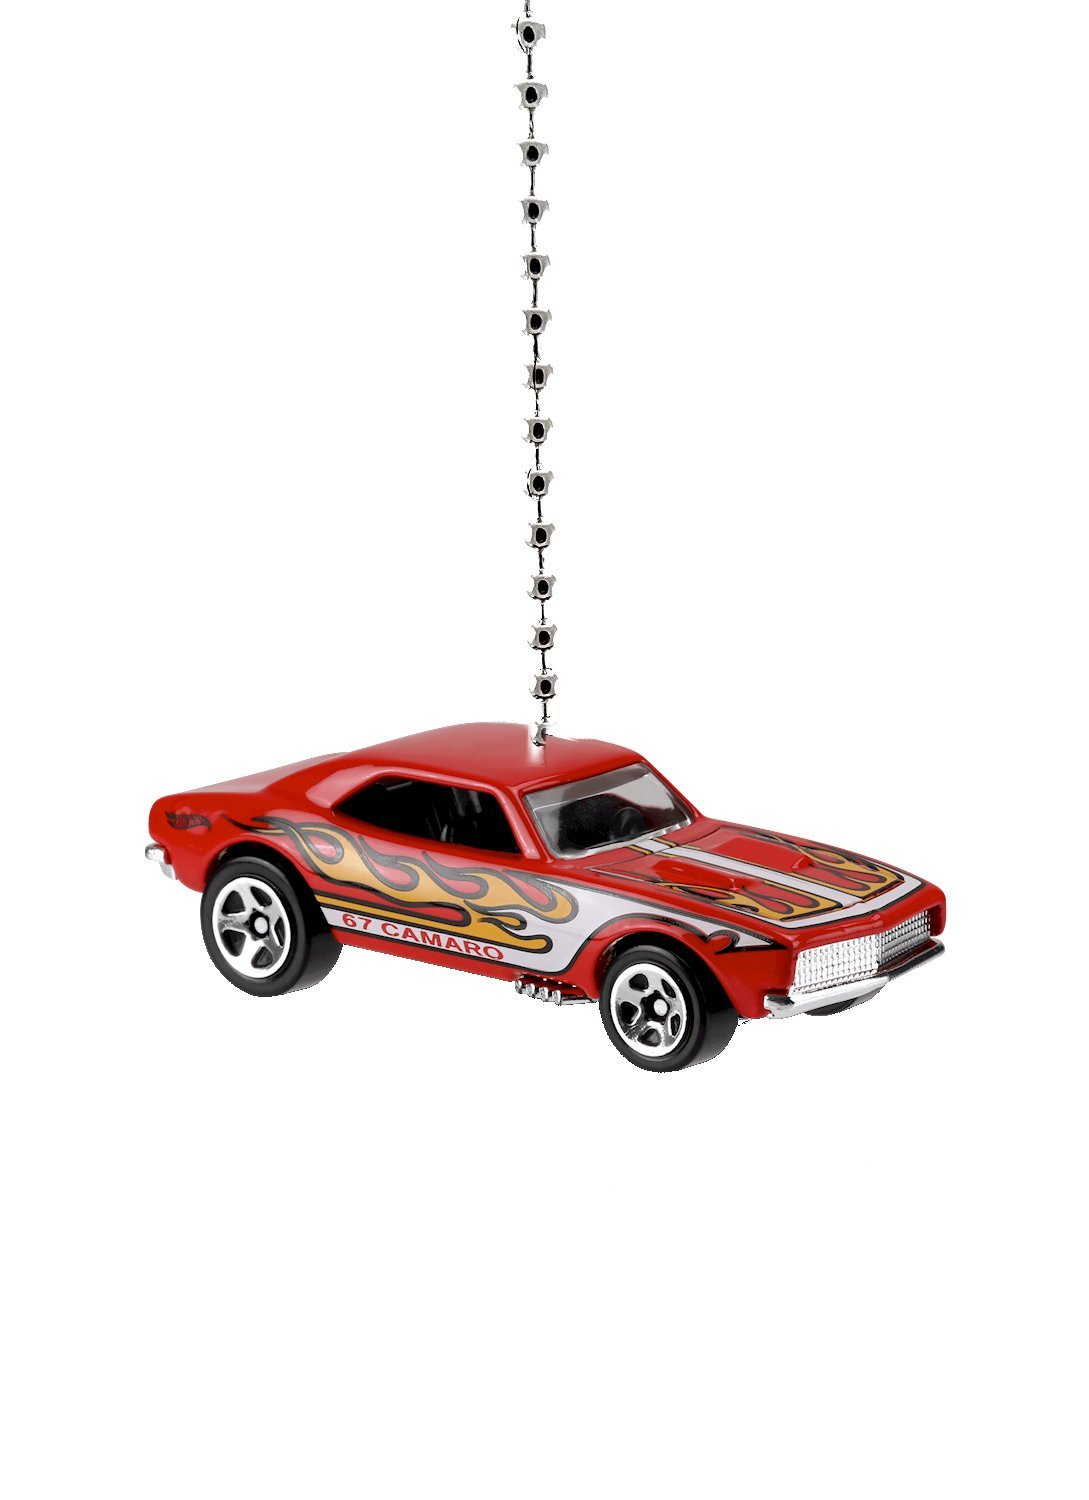 Hot Wheels Chevy Camaro Diecast Car Ceiling Fan Light Pull & Ornament 1/64 Scale (1967 Chevy Camaro - Red)